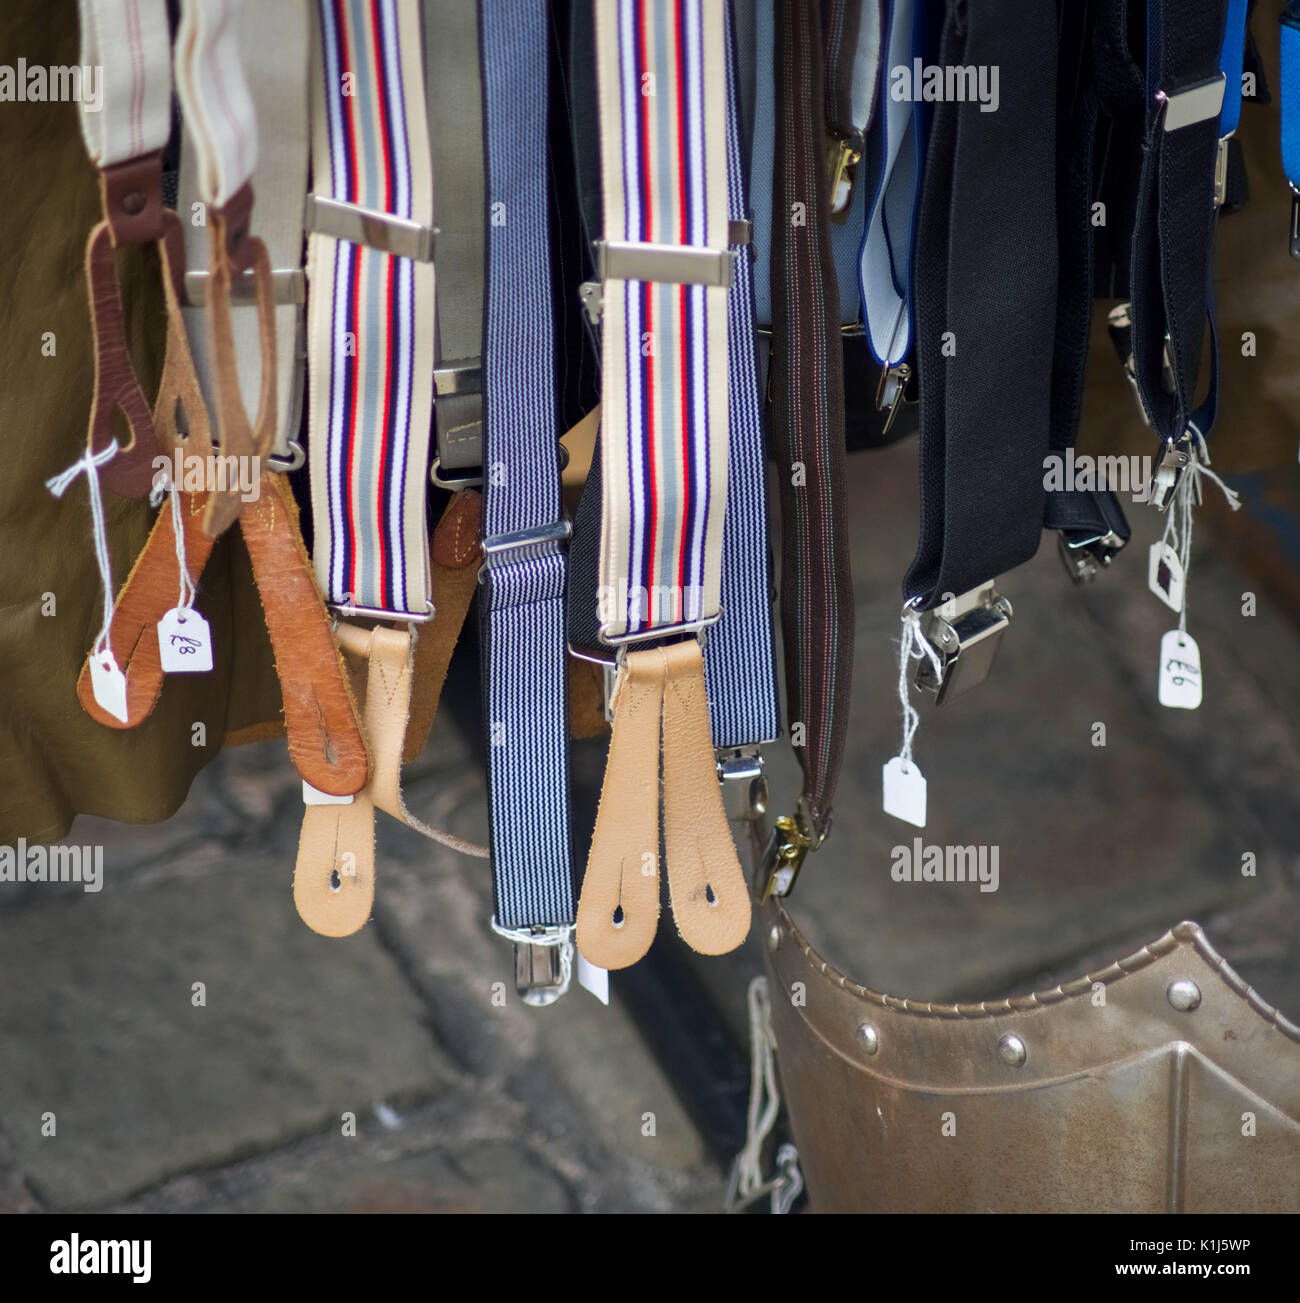 Vintage clothing suspenders braces - Stock Image